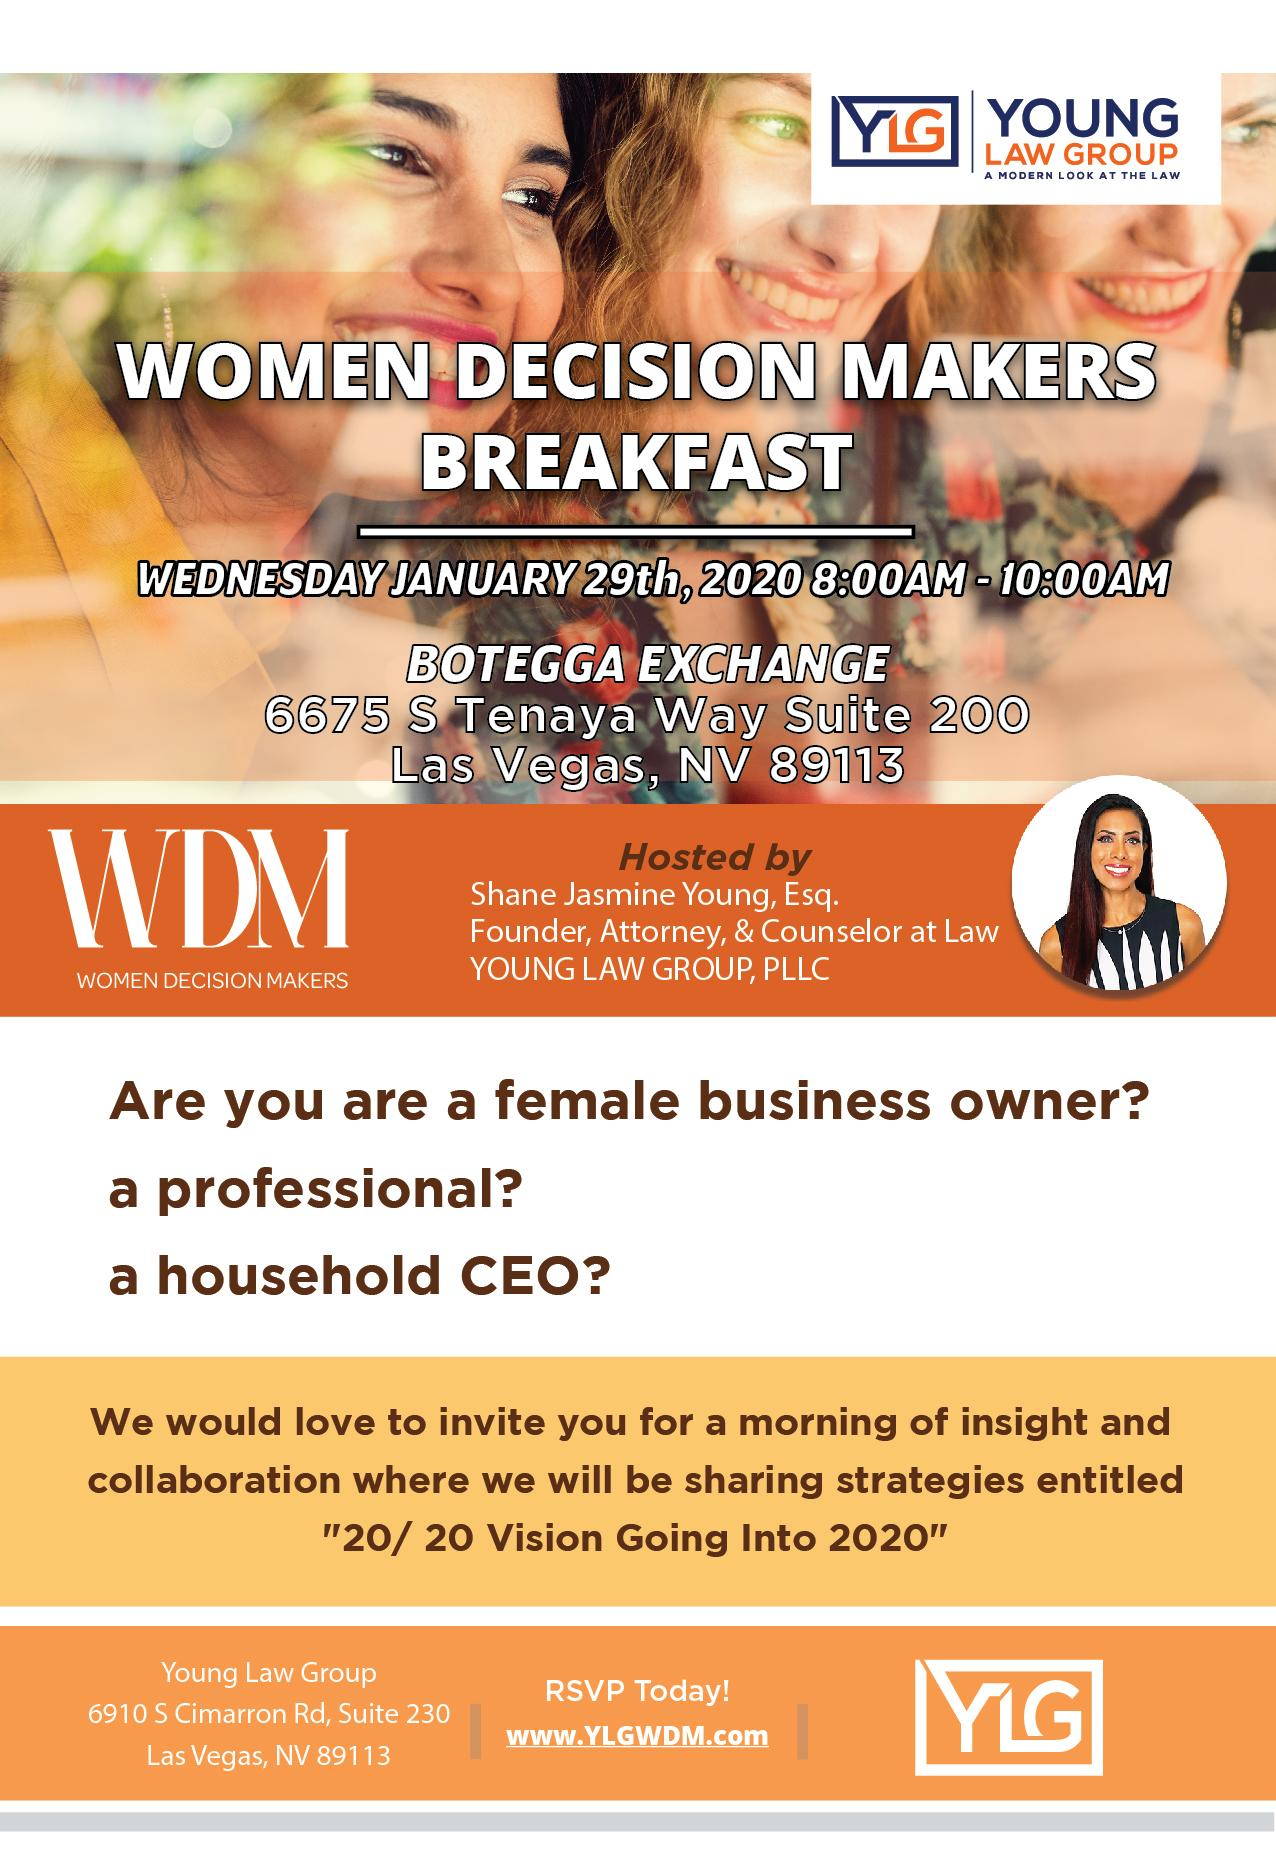 Women Decision Makers Breakfast 20/ 20 Vision Going Into 2020